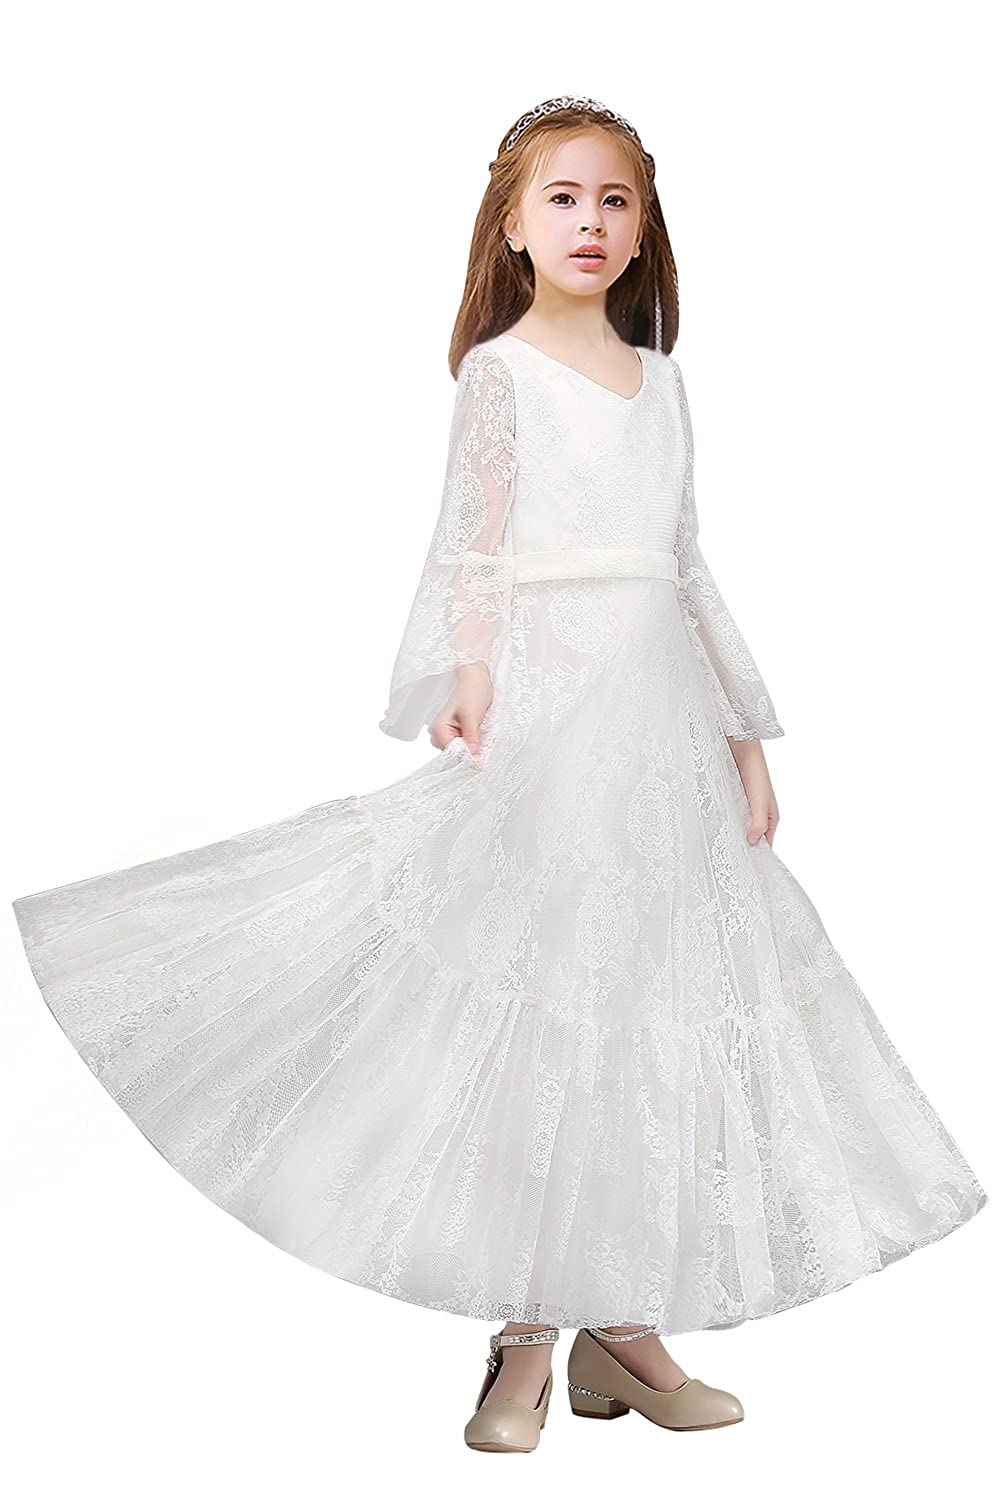 ae410e5e88 Amazon.com  Babyonlinedress Flare sleeve Floral lace Little Girl s Wedding  party dress  Clothing